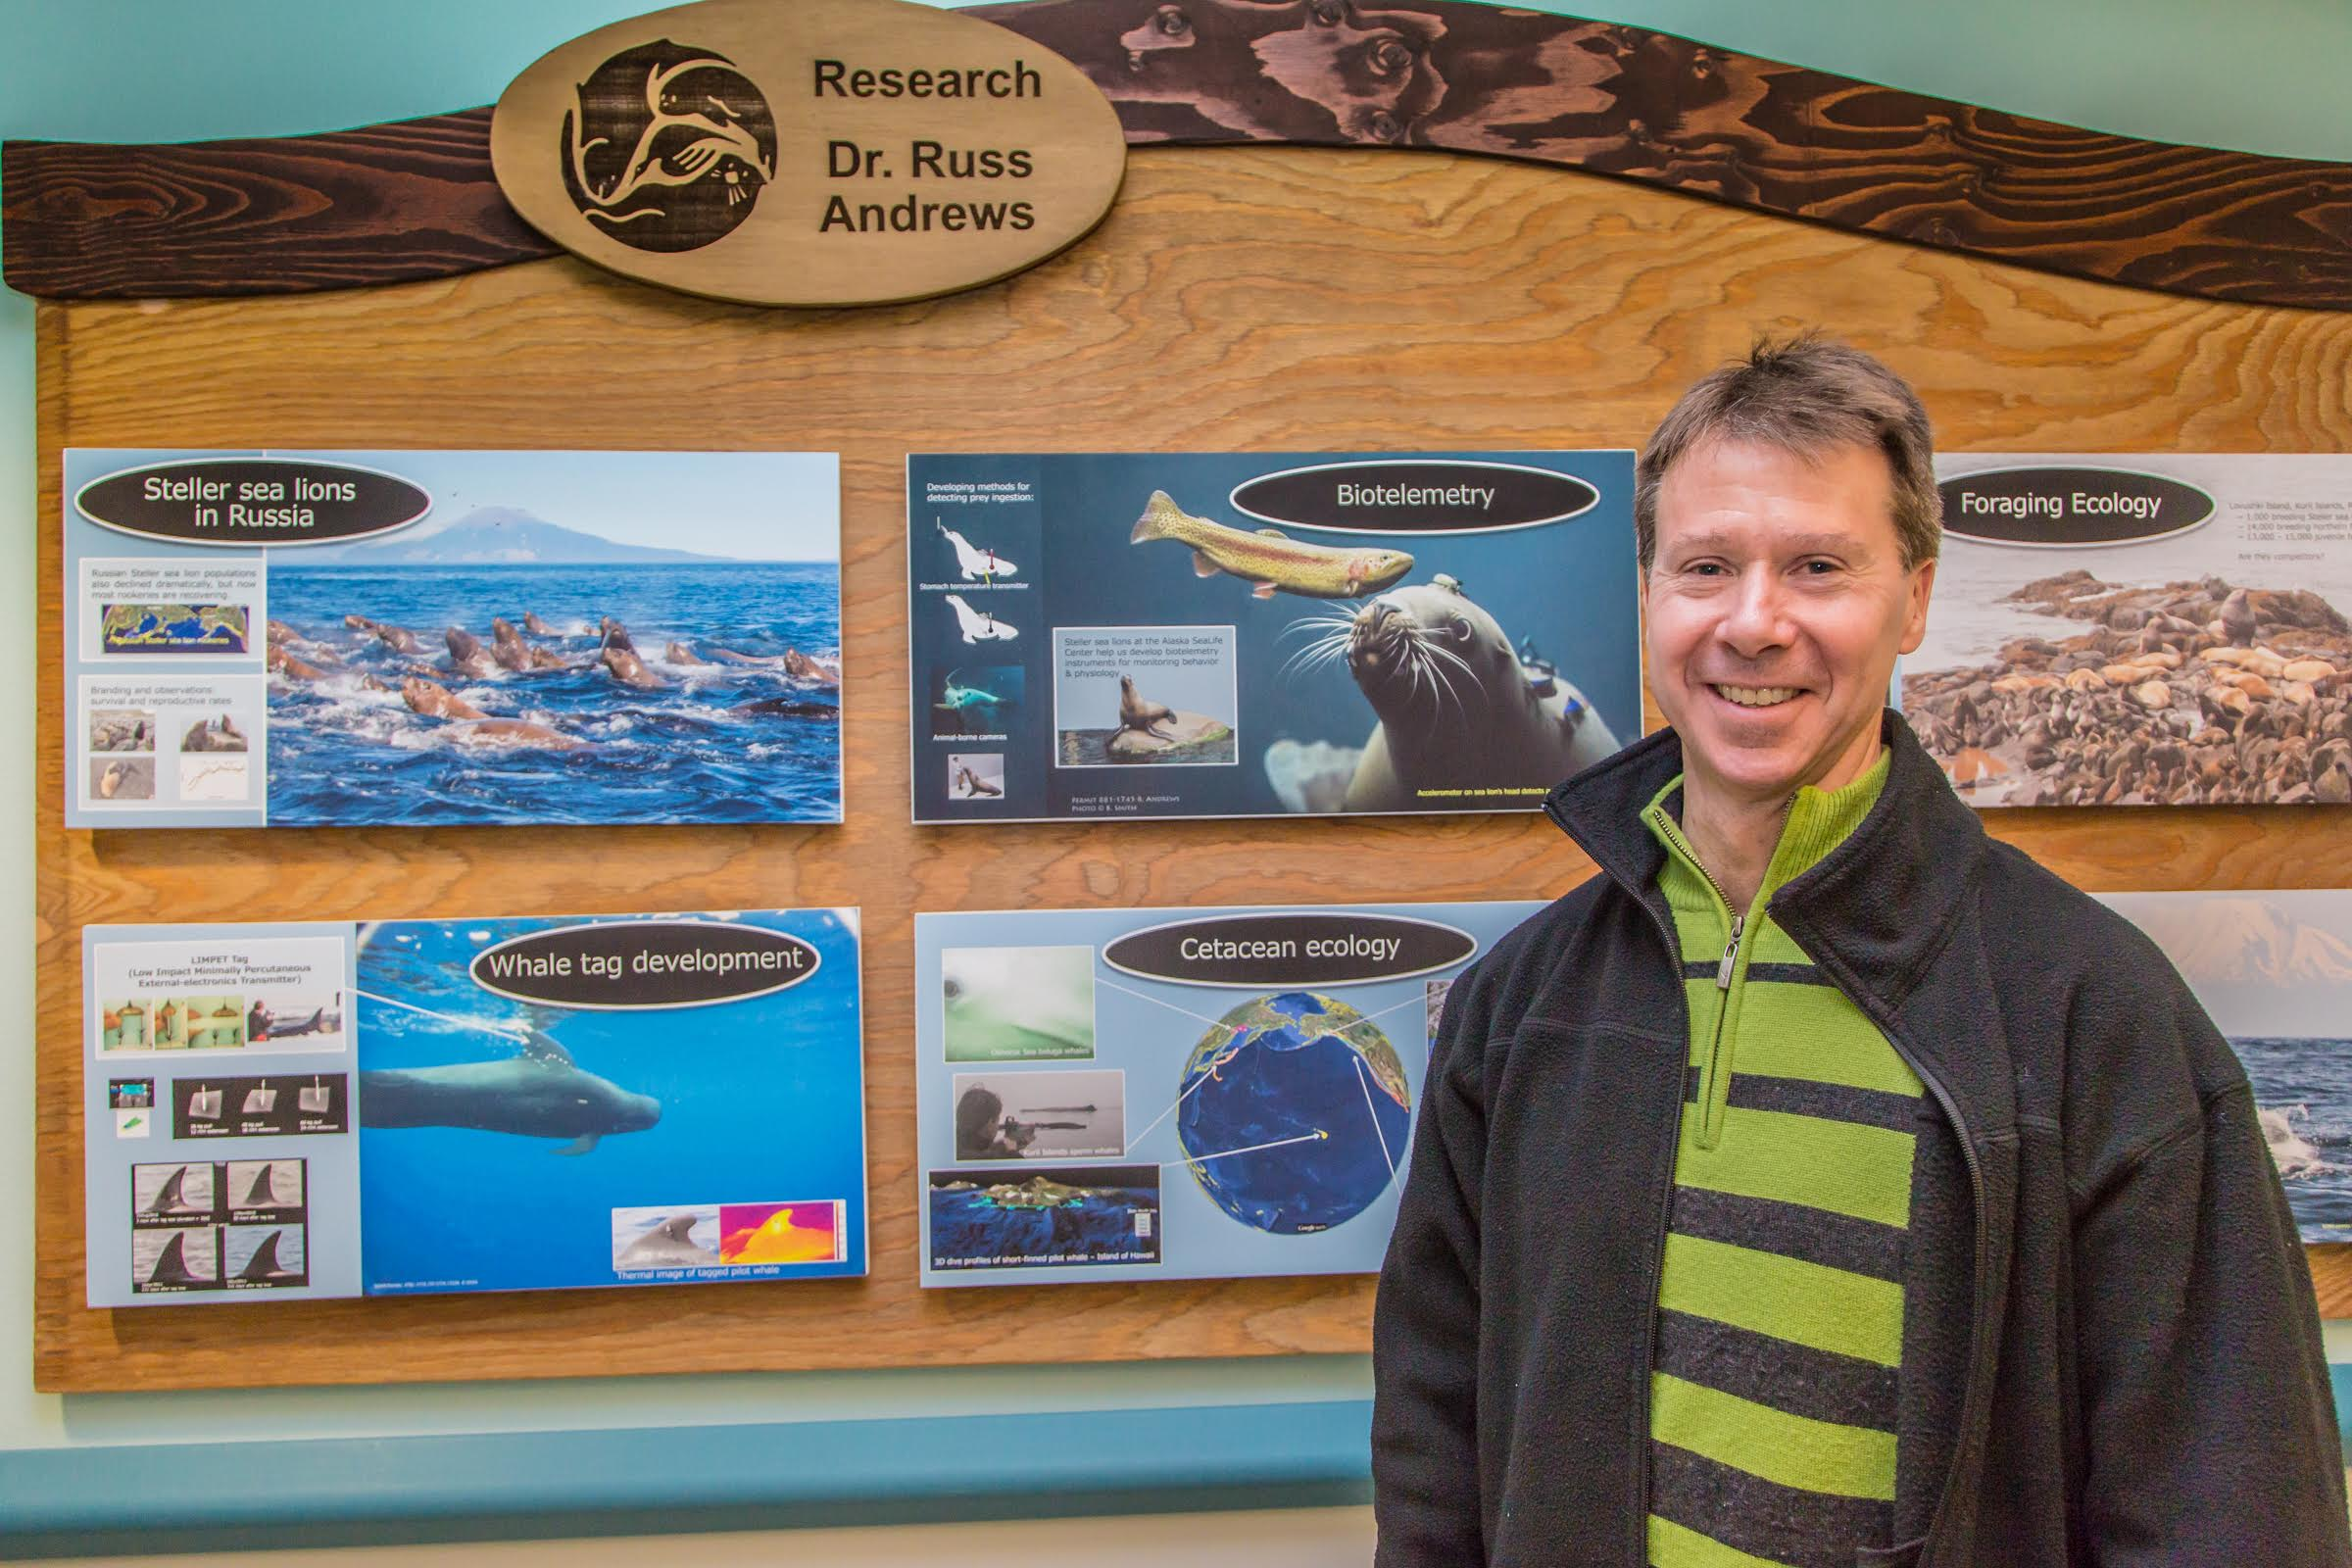 Research Assistant Professor Russ Andrews stands by one of his posters on display at the Alaska Sea Life Center in Seward.